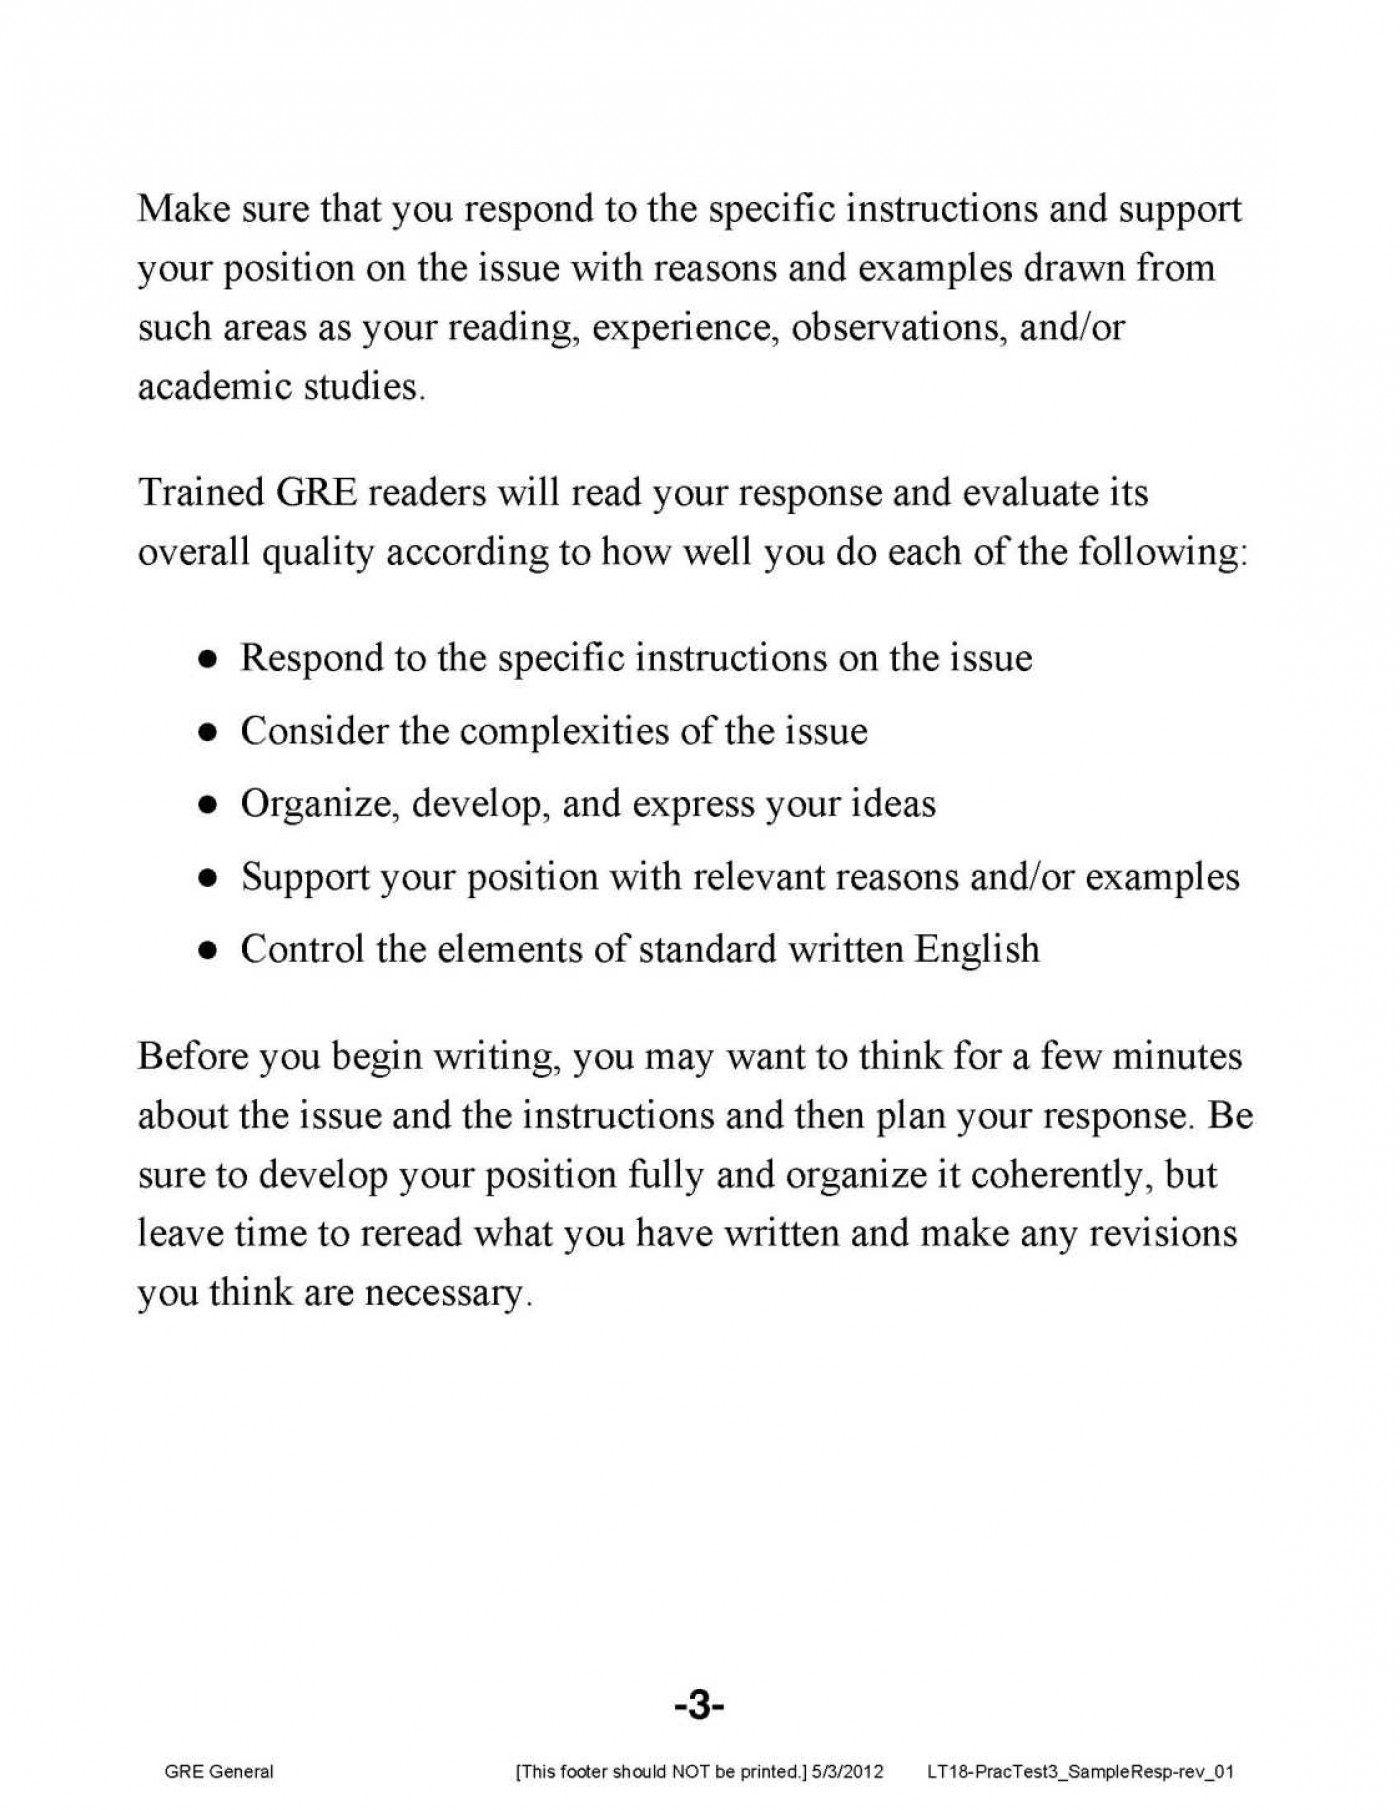 016 Gre Essay Topics Questions Ayucarcom Samples L Remarkable Pdf Analytical Writing Grader Issue Pool Solutions 1400